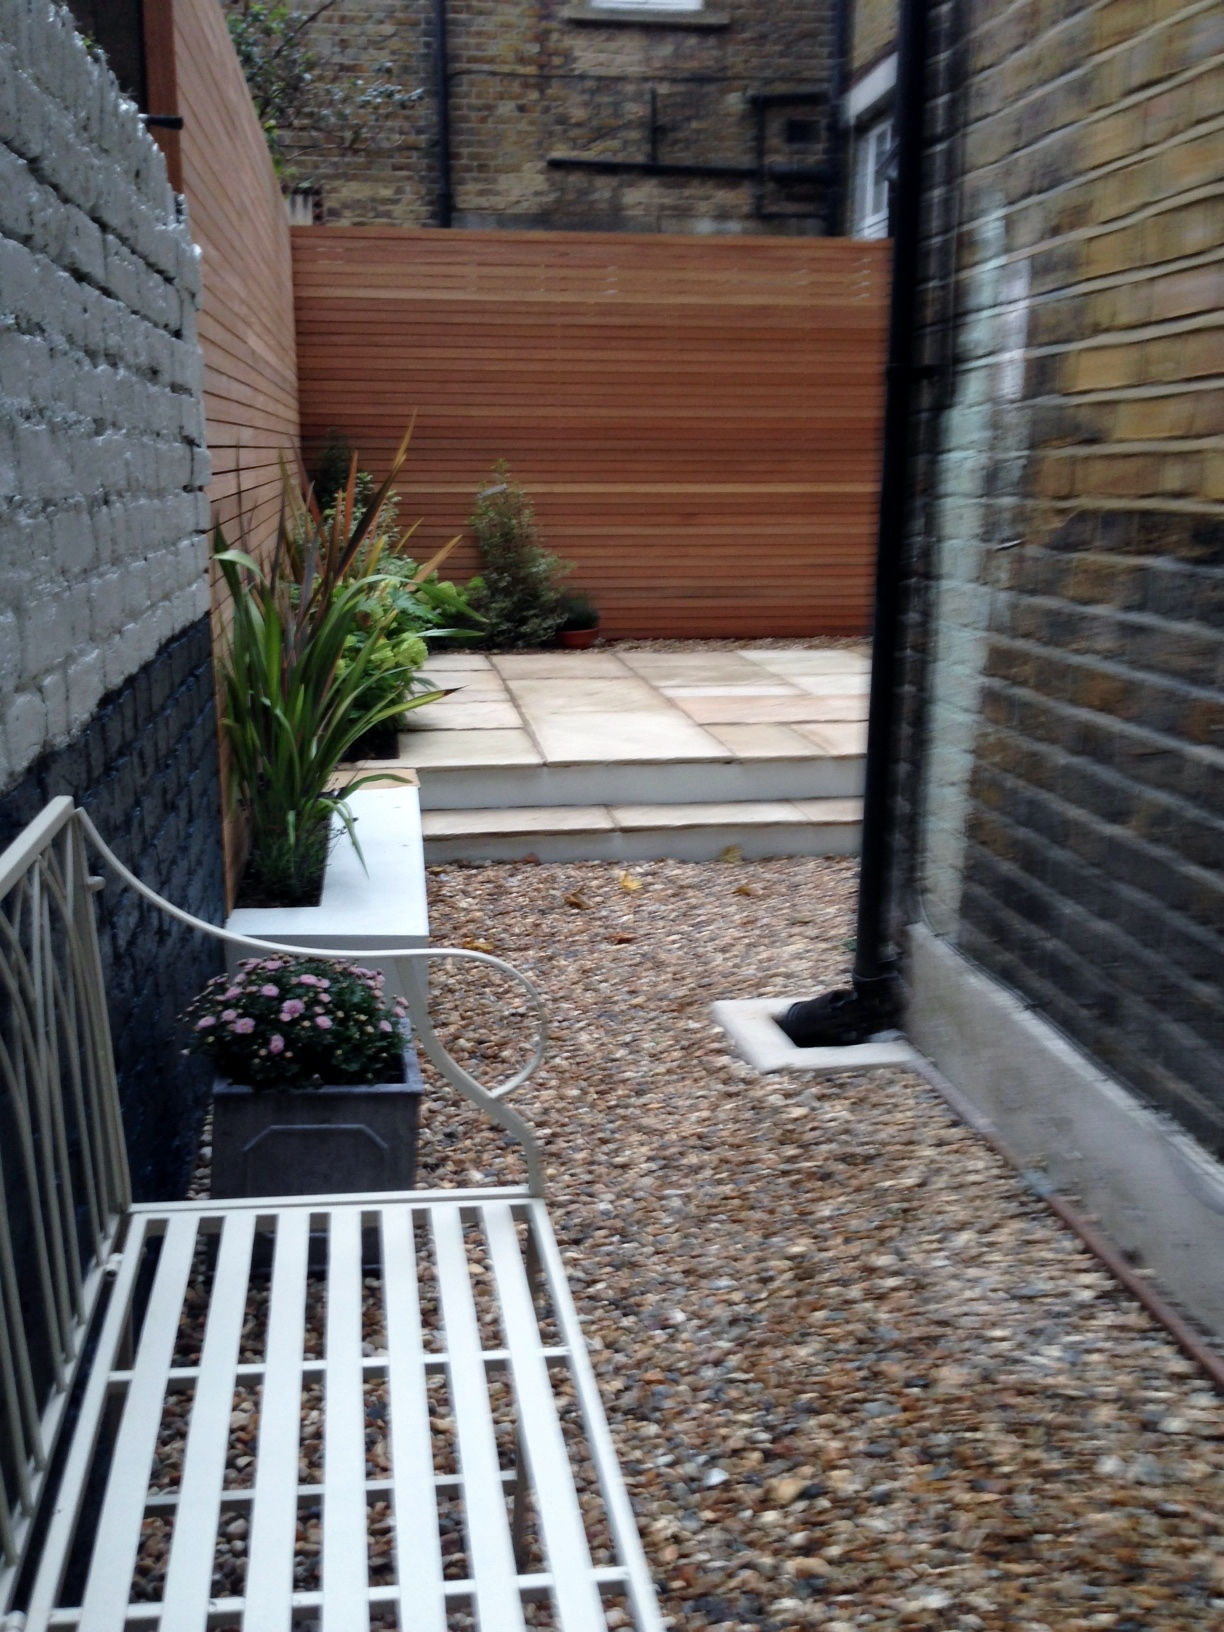 clapham garden design sandstone paving hardwood privacy screen shingle trellis fence modern low maintenance ideas (8)